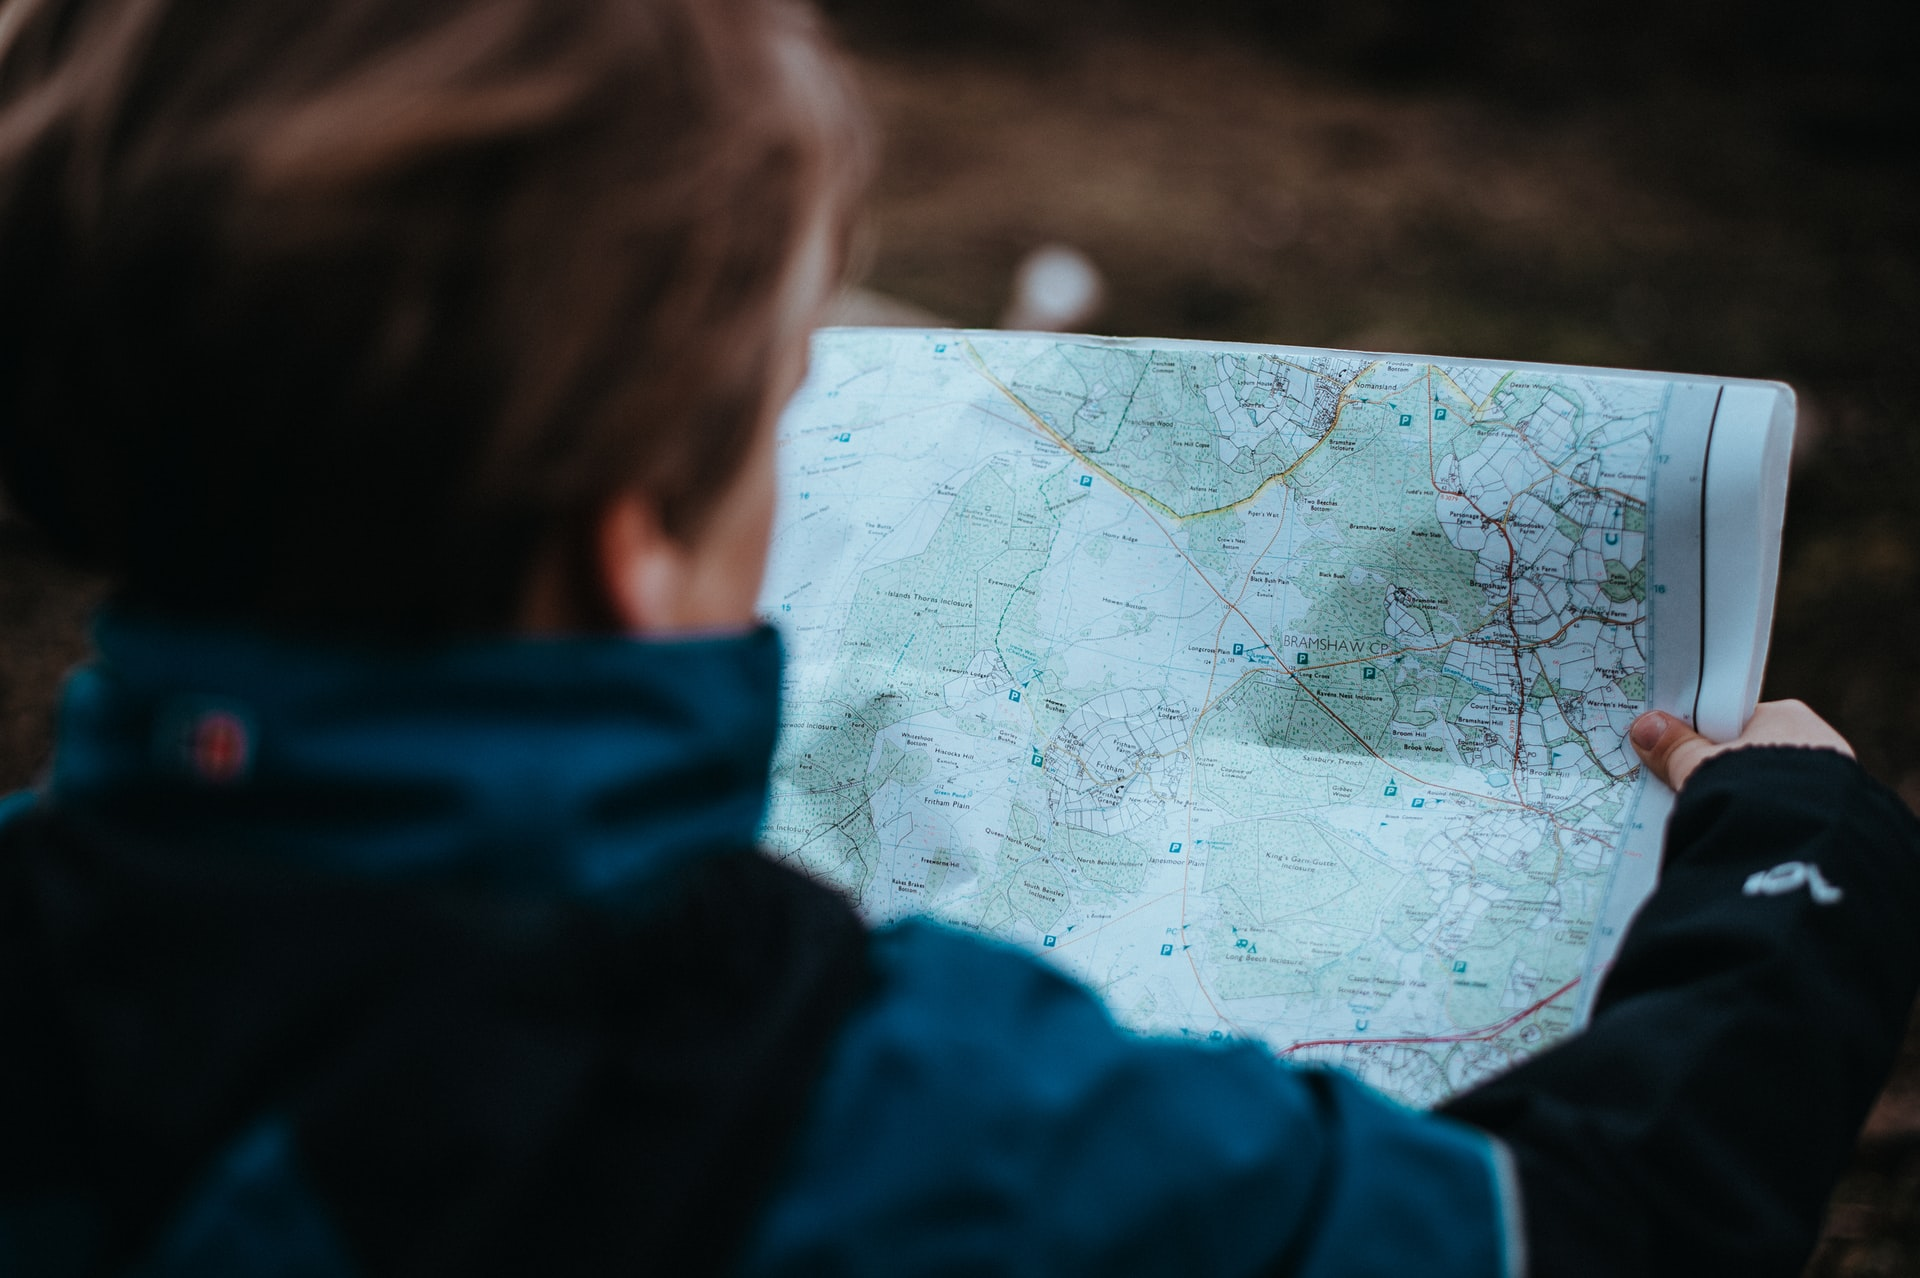 Person looks at map for planning backpacking trip